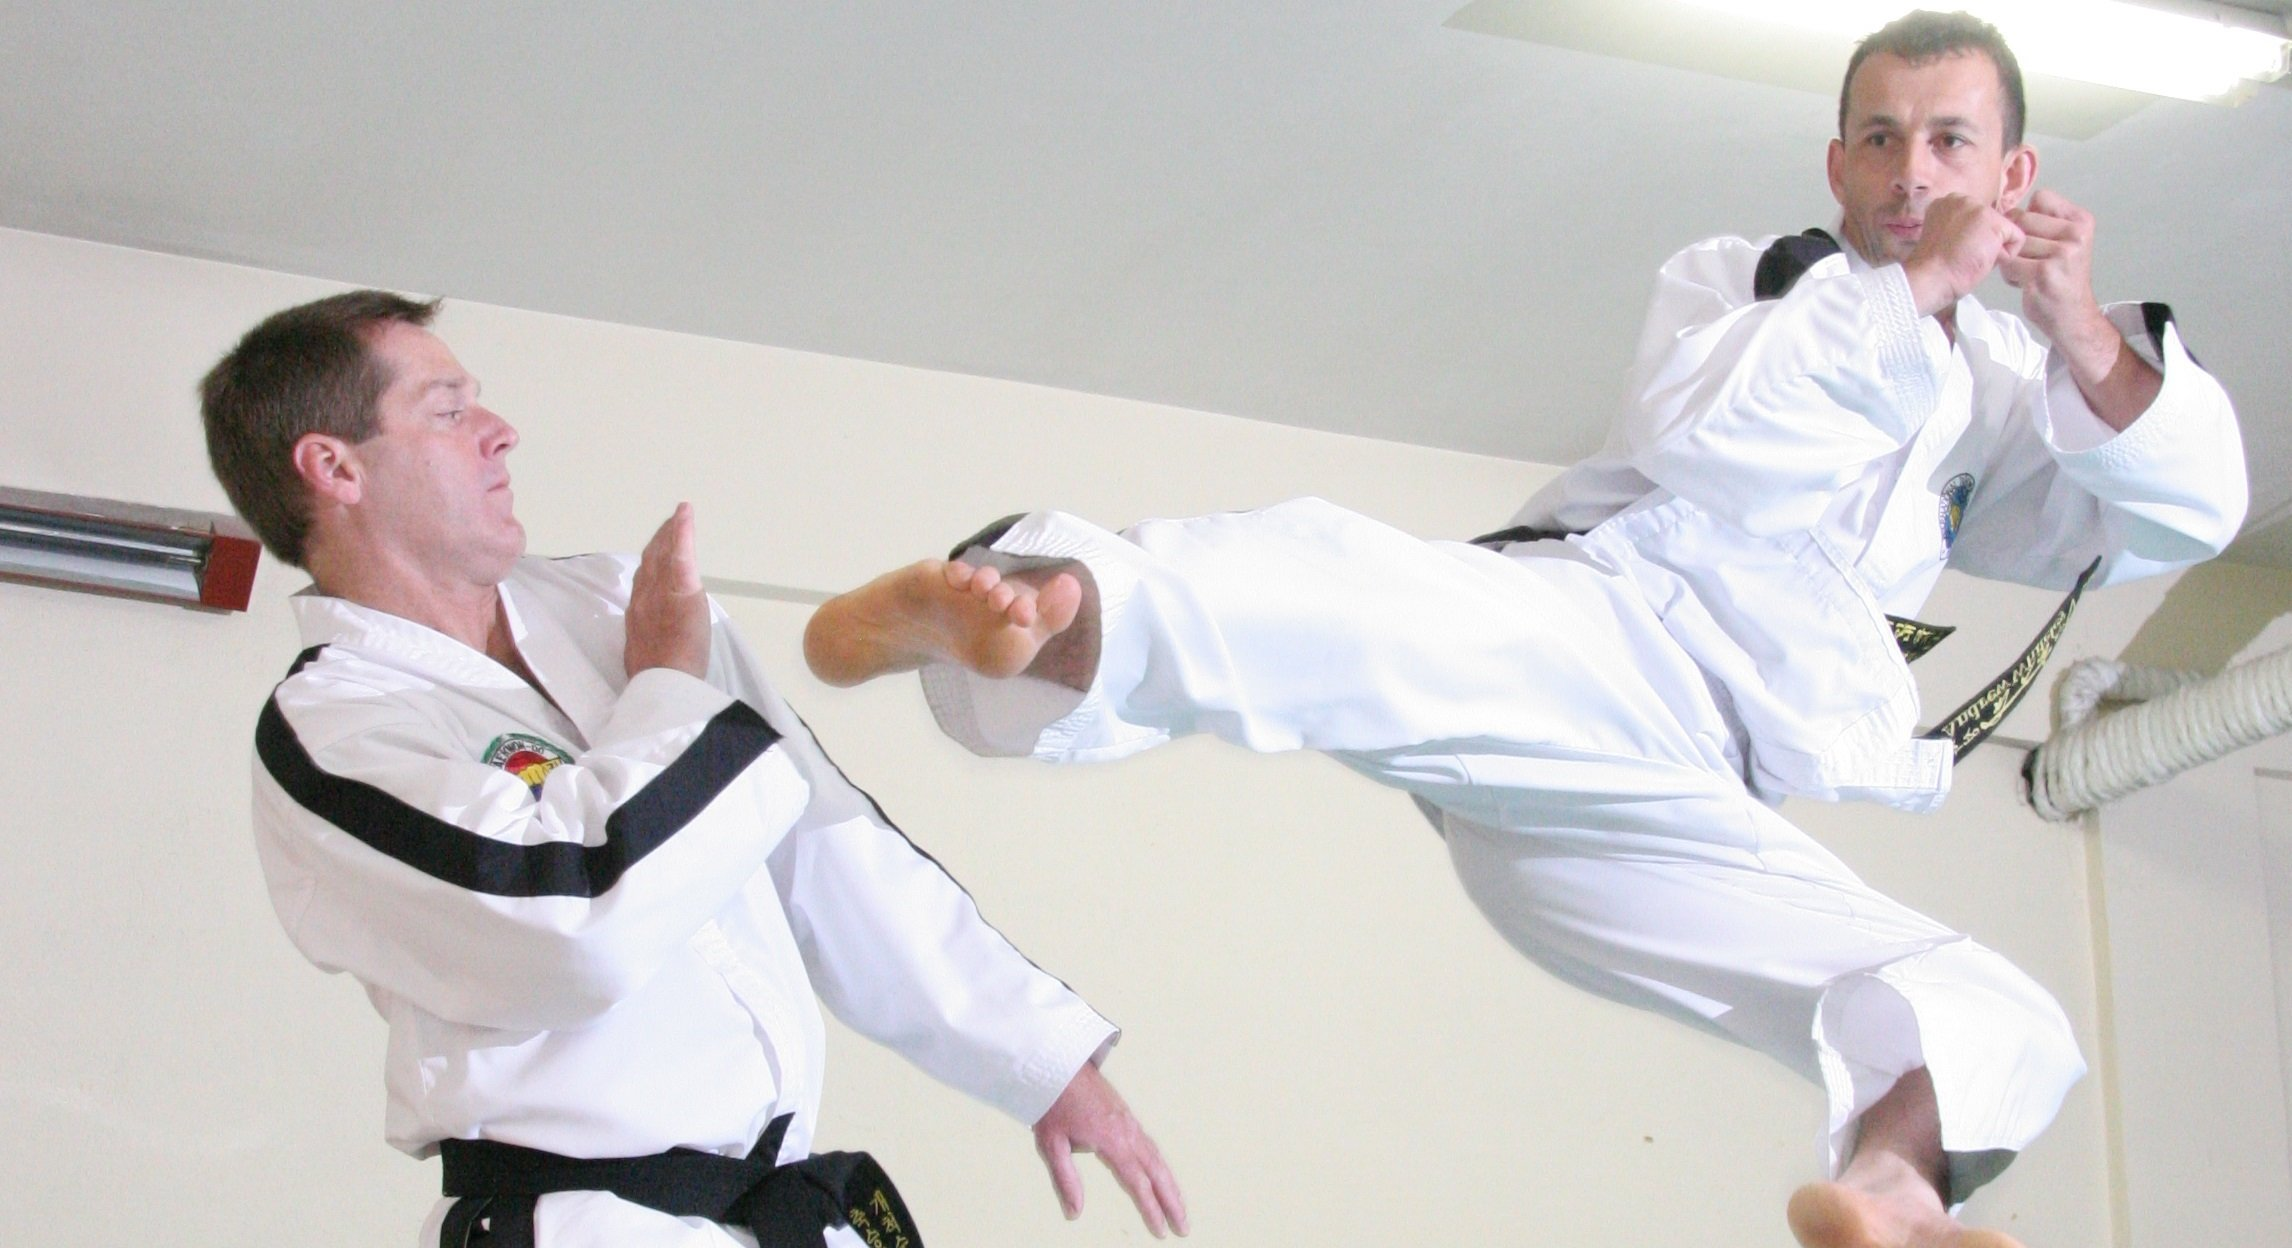 Man training in Taekwon-Do